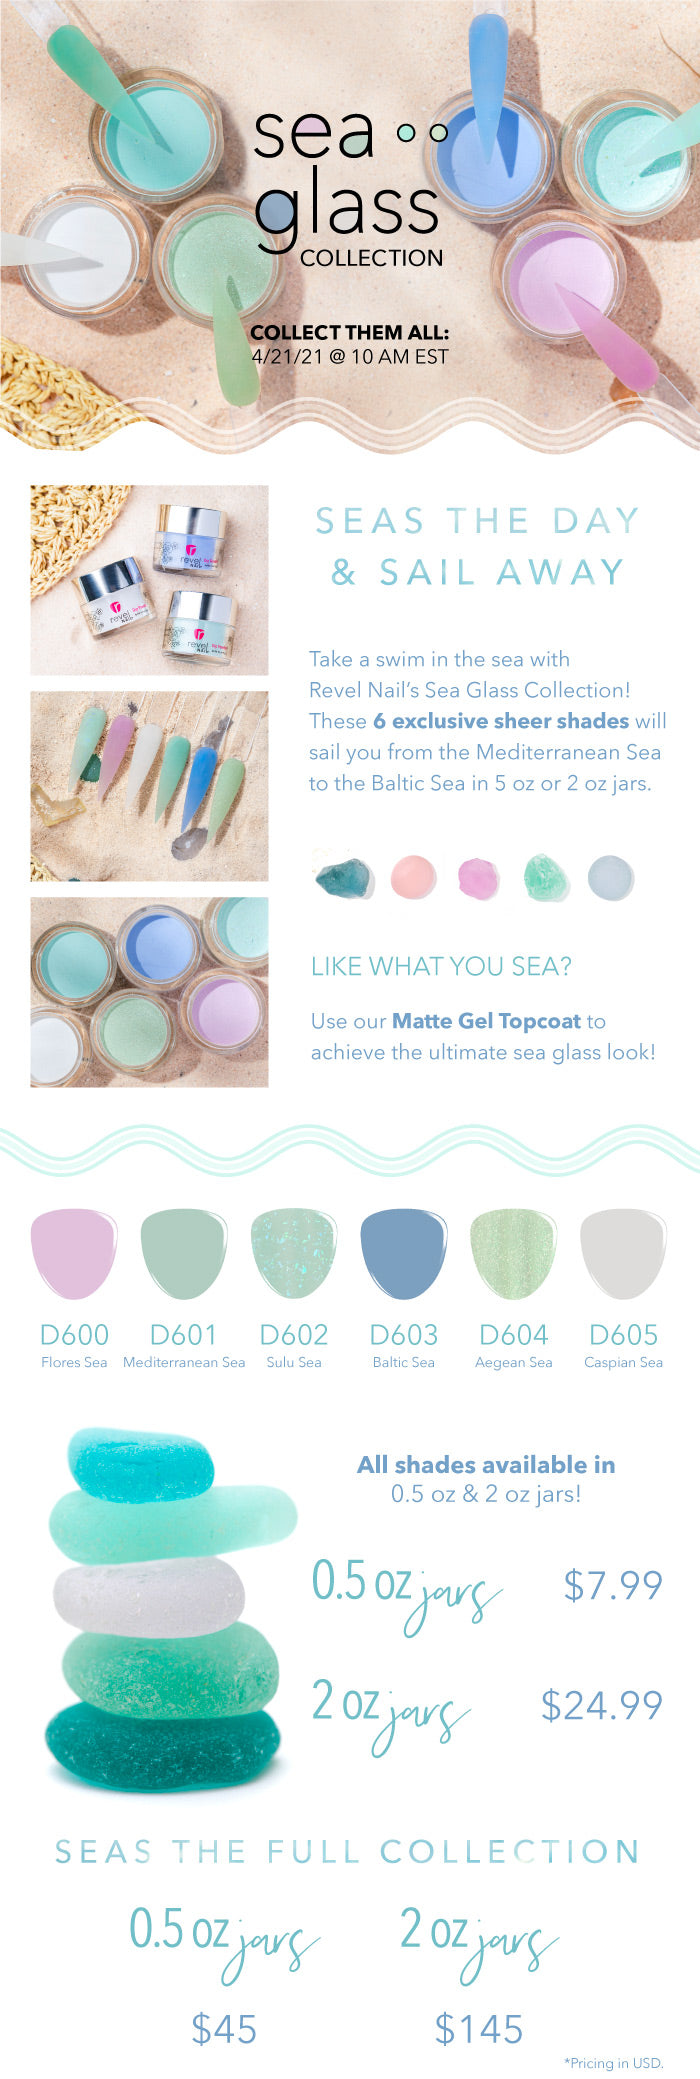 Limited Edition Sea Glass Collection | Summer Jelly Dip Powder | Translucent Jelly Nails | Revel Nail Dip Powder